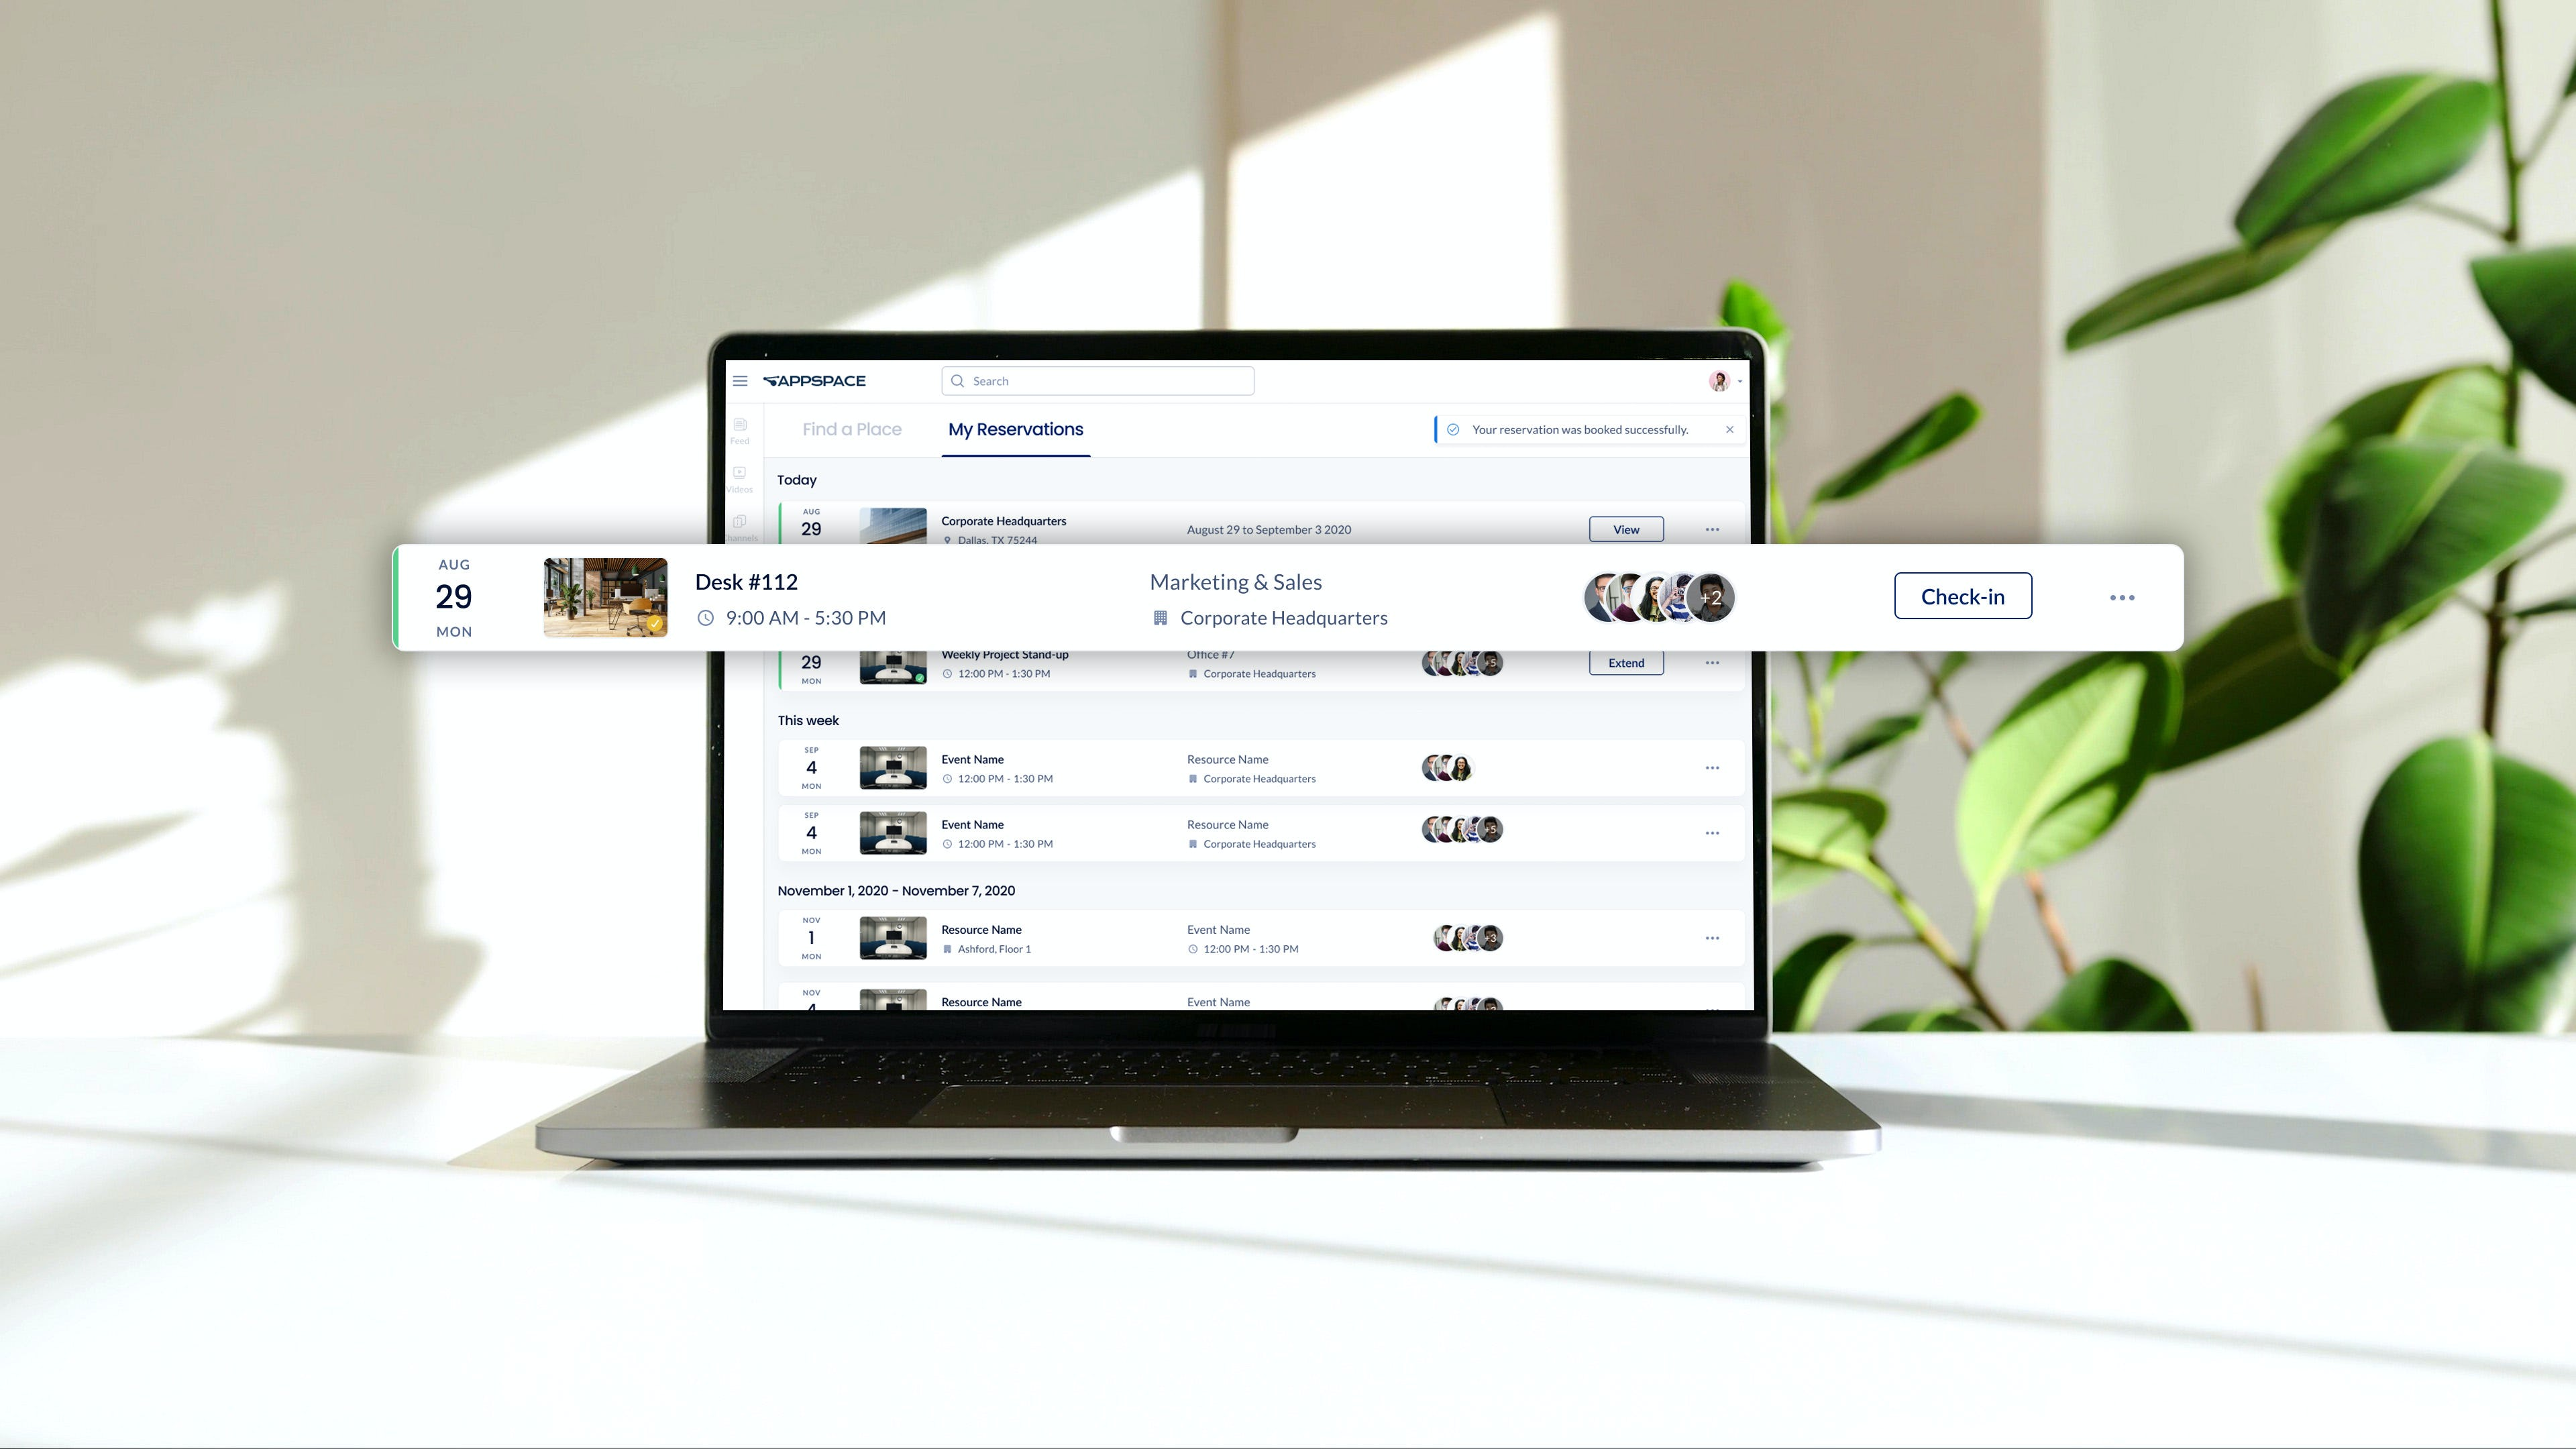 Appspace Software - Space and desk reservation tools to help manage your office.